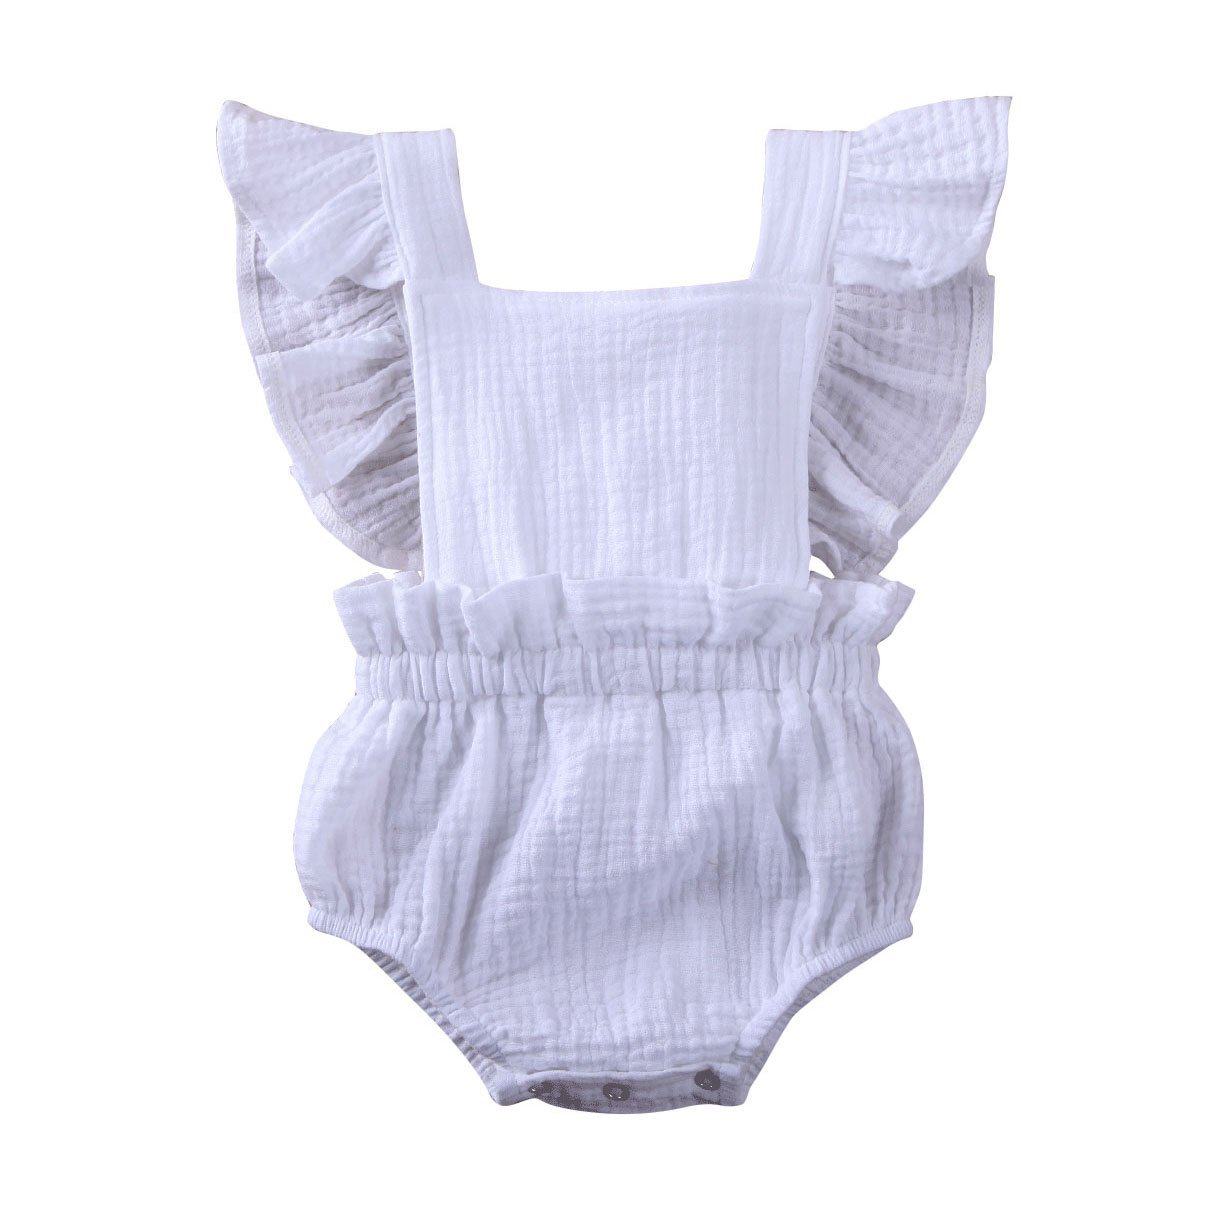 Solid Flutter Romper - The Trendy Toddlers